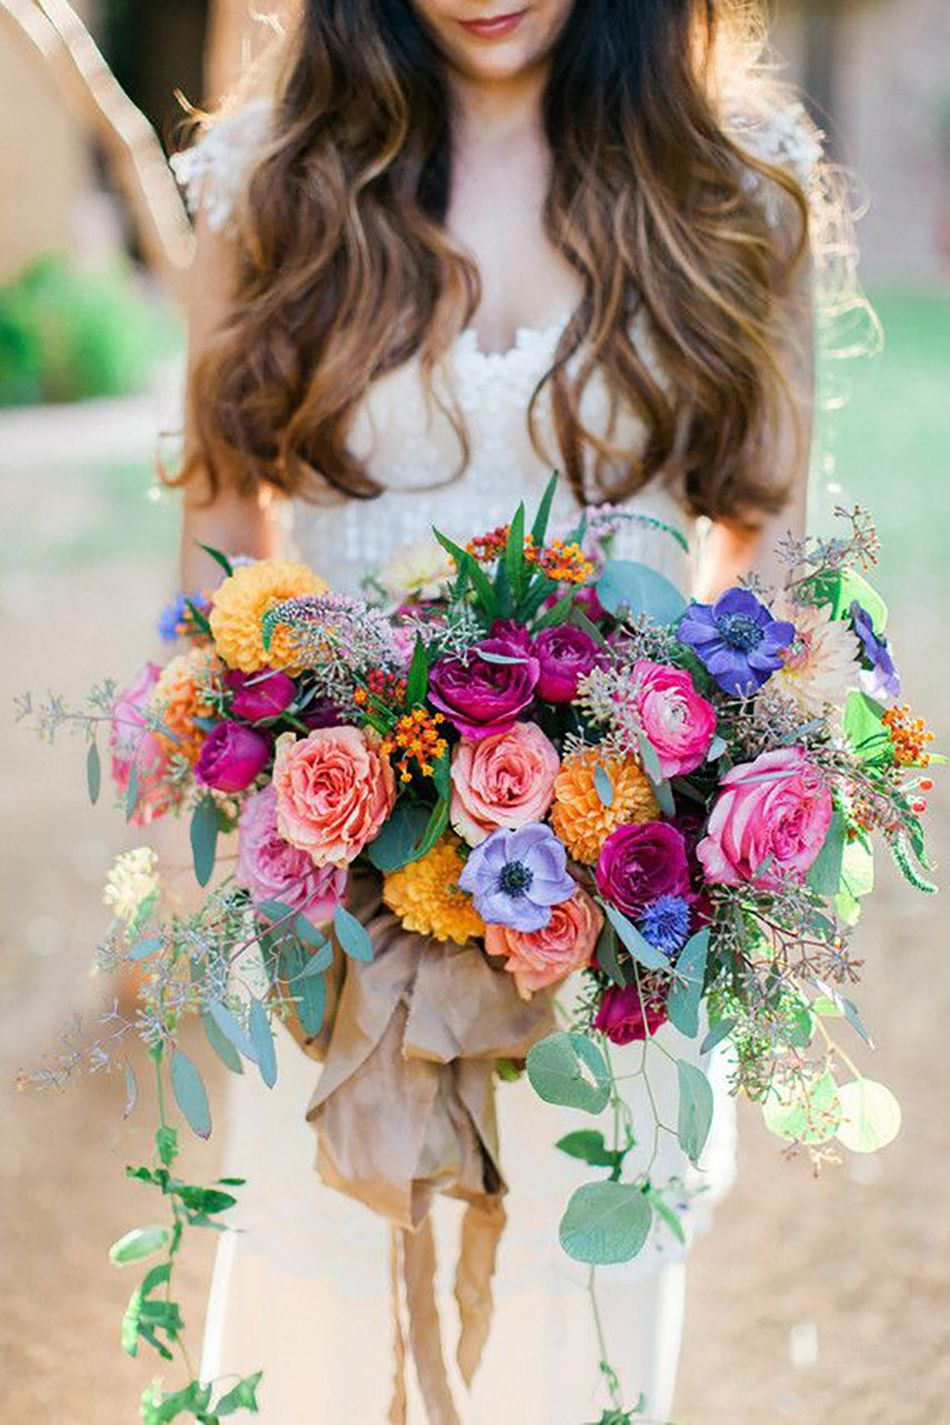 Colourful Wedding Bouquet With Wild Flowers